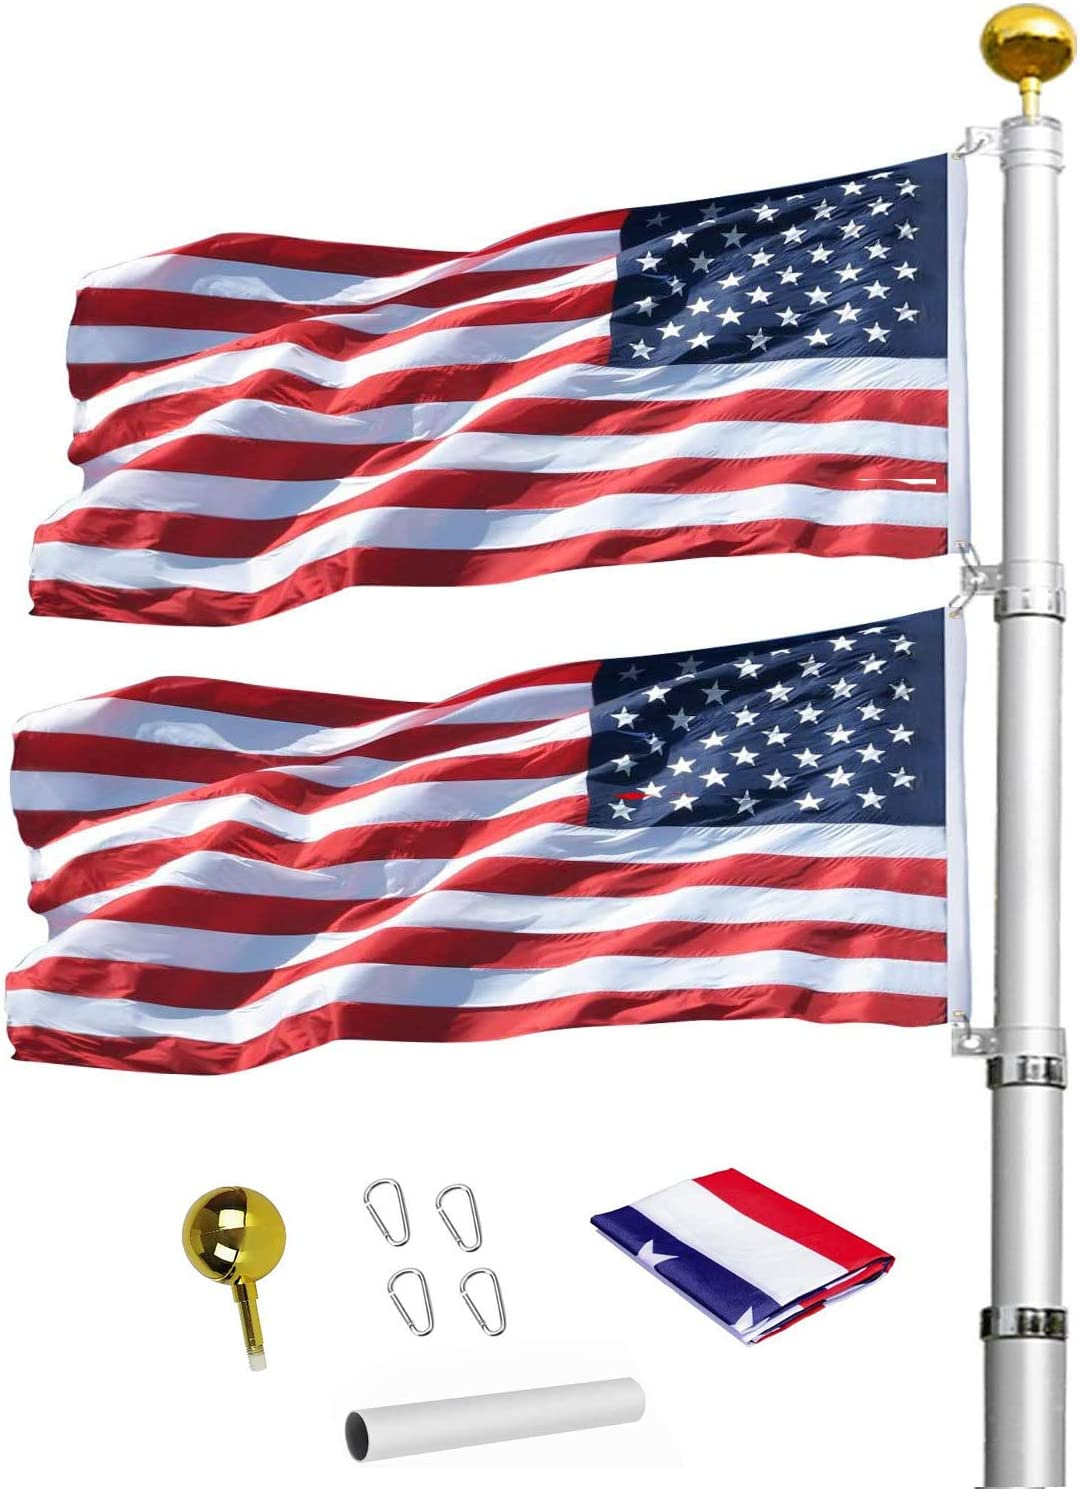 20FT Telescoping Flag Poles, Heavy Duty Flag Pole Kit, Includes Aluminum Flagpole, American Flag, Gold Ball Ornament,4 Stainless Steel Clips.